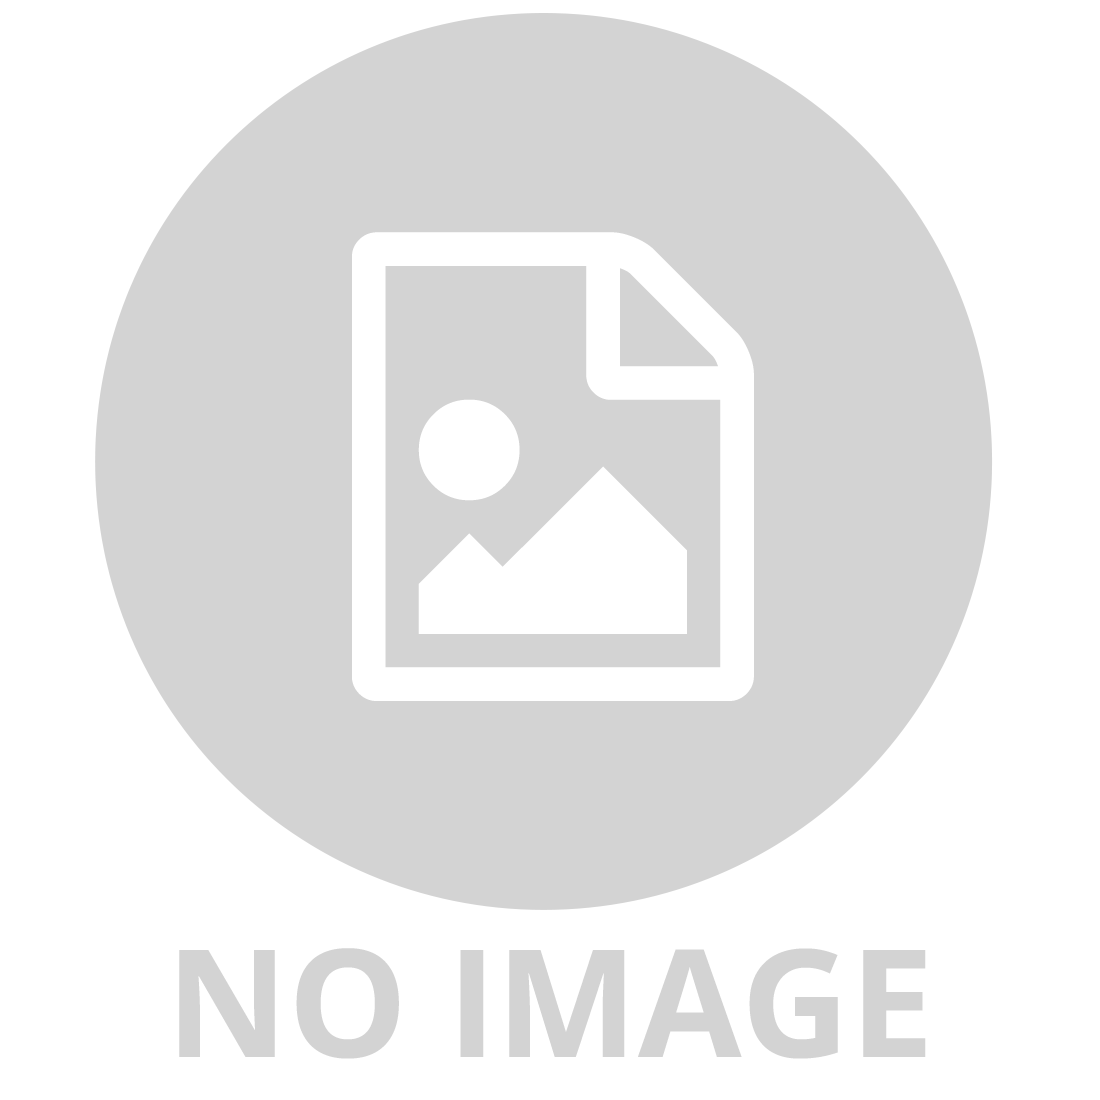 BEANIE BOOS MEDIUM FLIPPABLES - TREMOR BLUE/PINK DINOSAUR